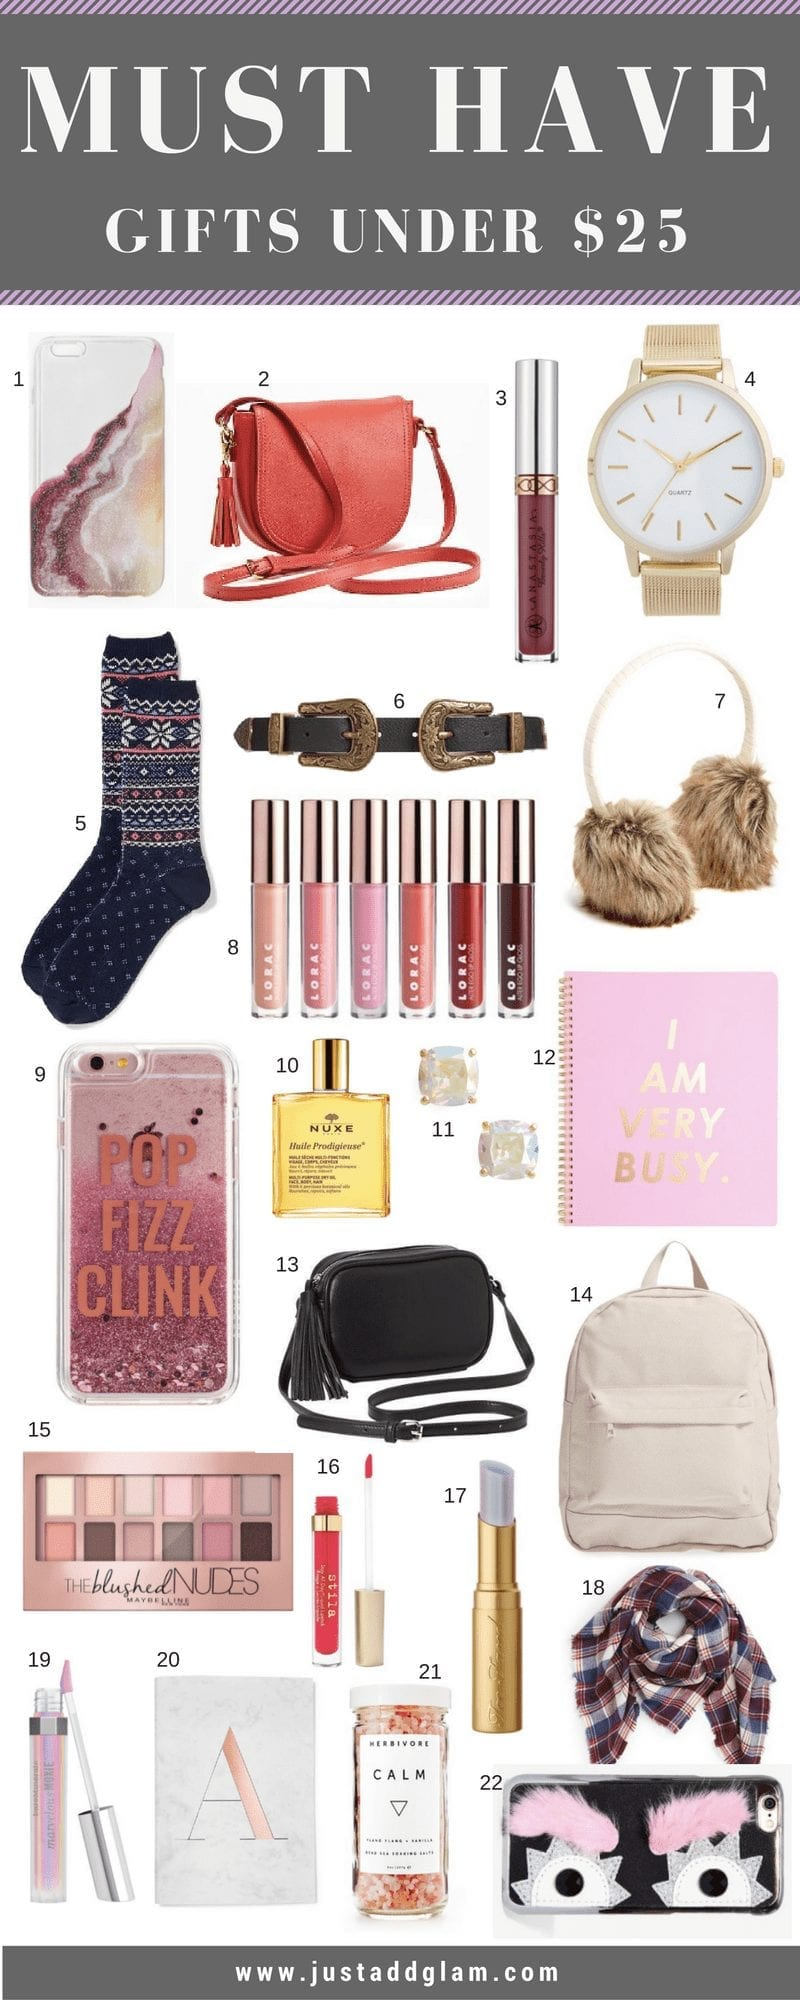 Must Have Gifts under $25 | THE BEST GIFTS UNDER $25 featured by top San Francisco lifestyle blog, Just Add Glam